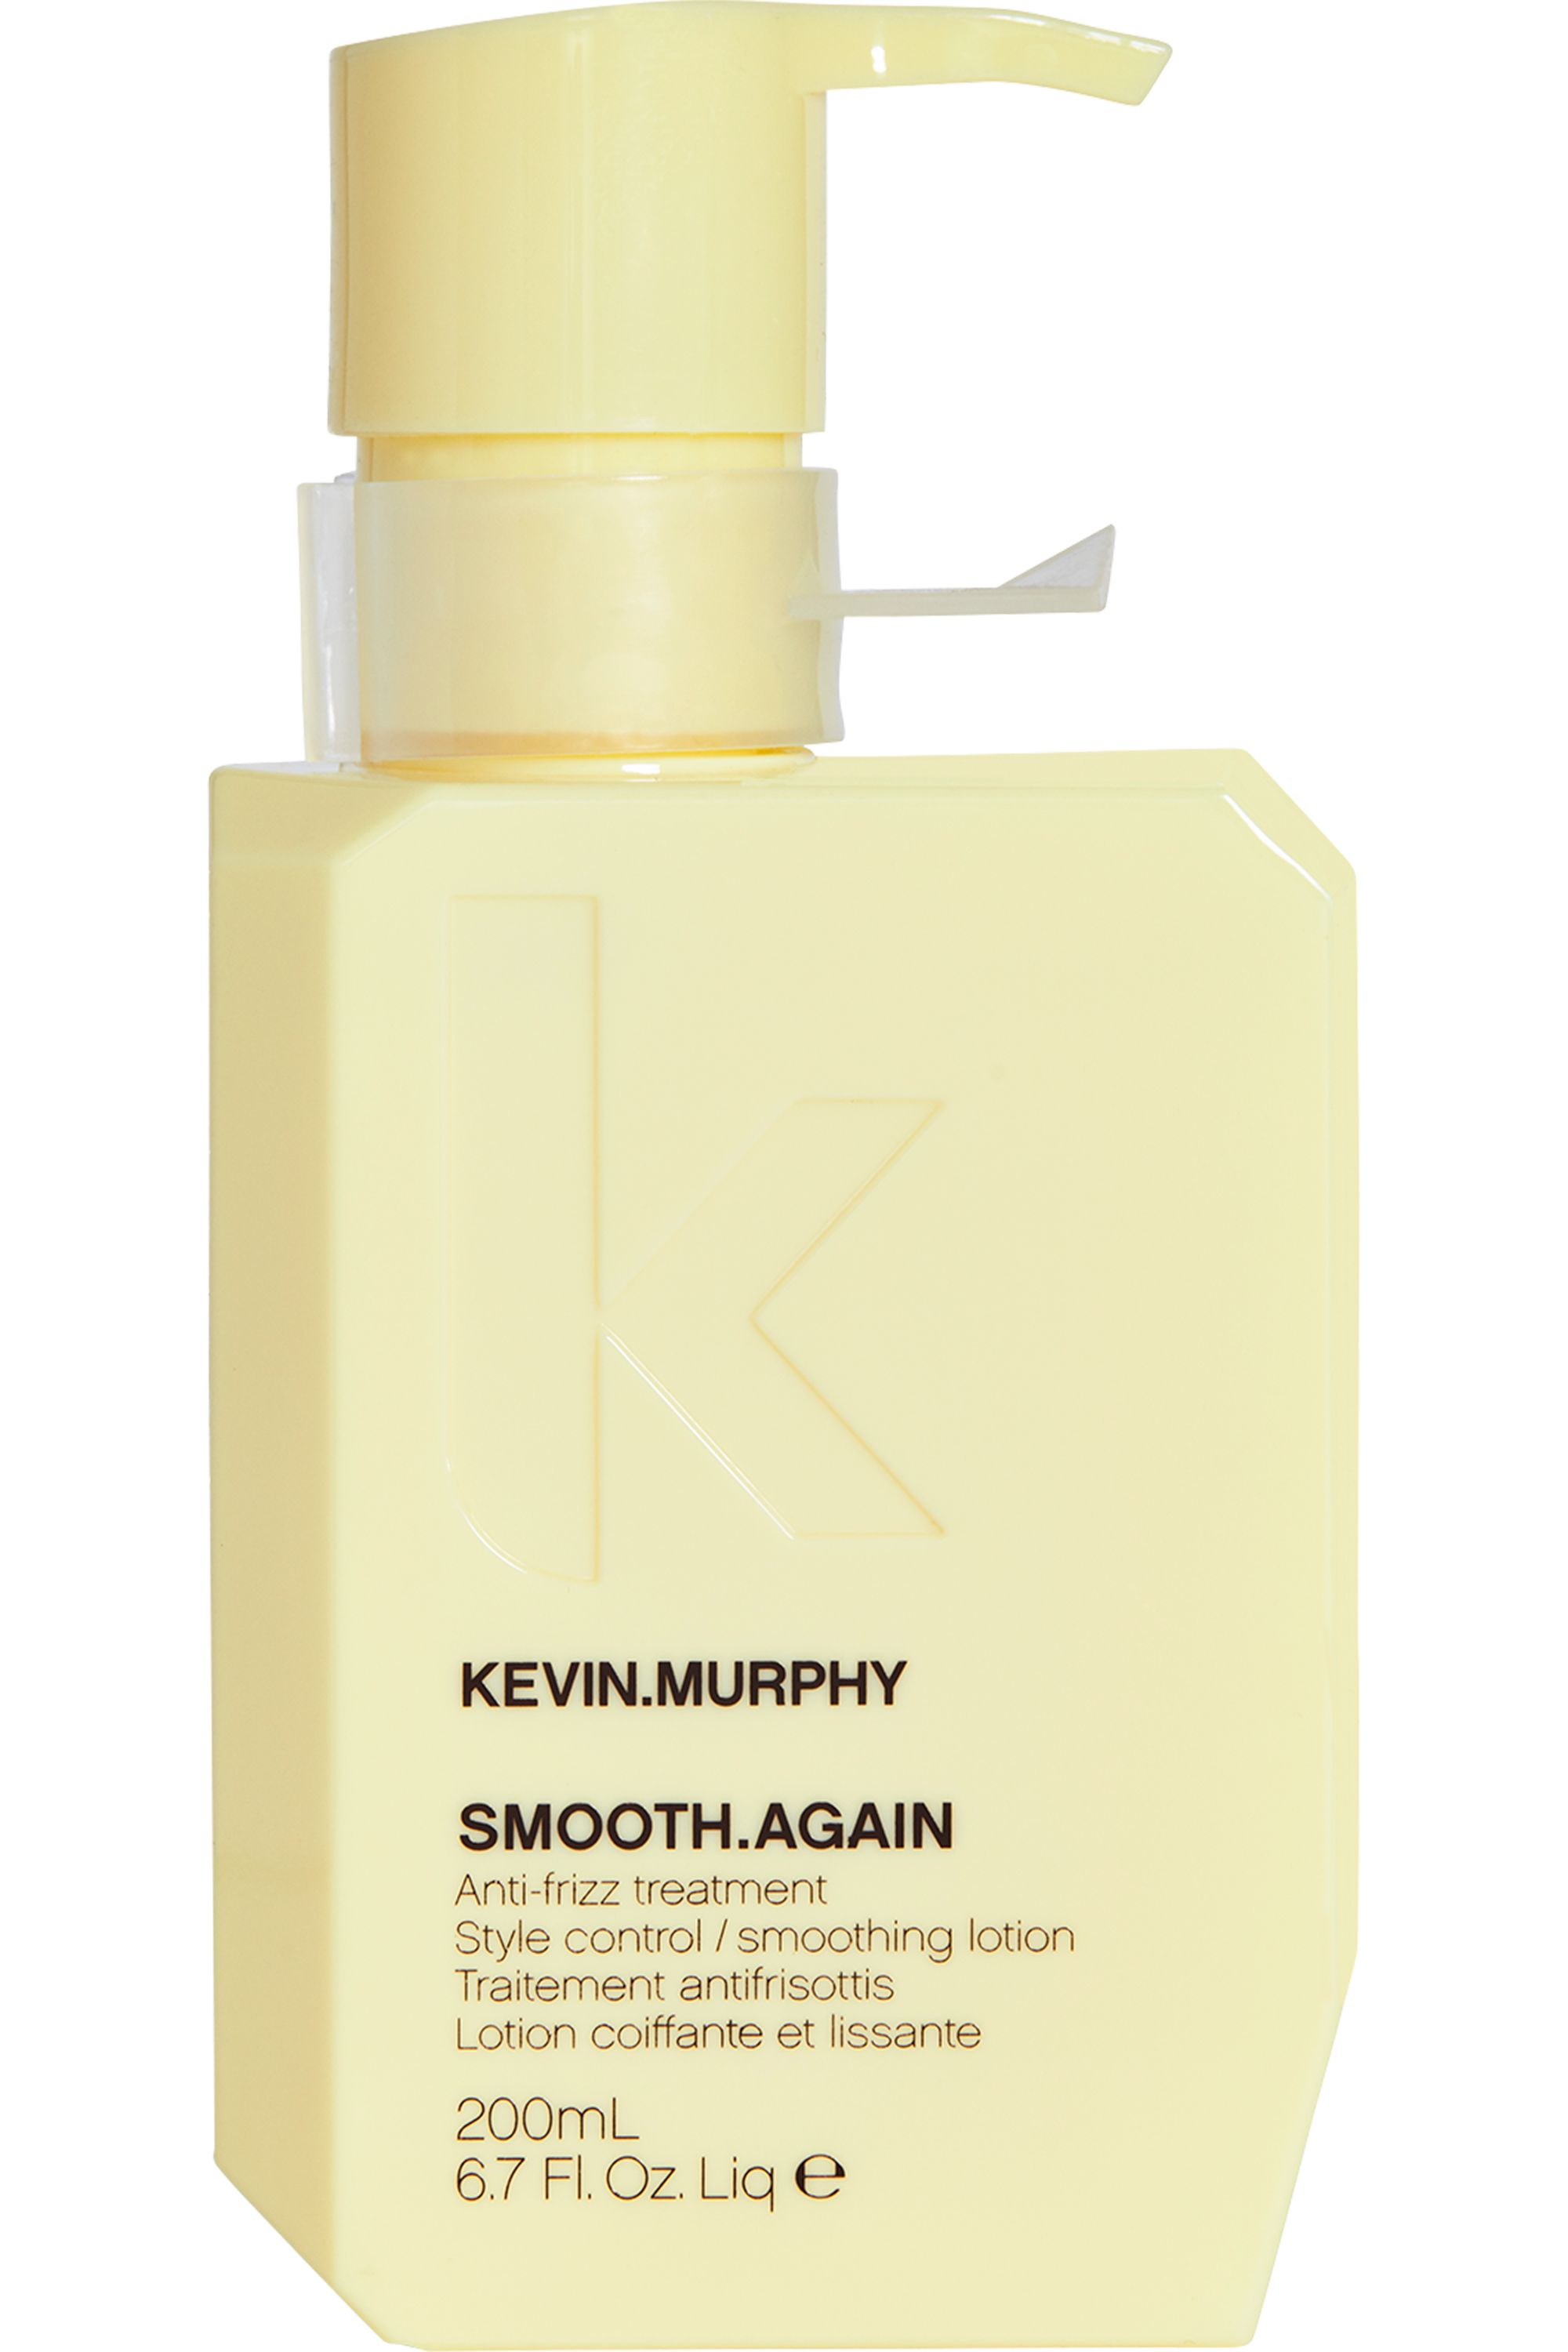 Blissim : KEVIN.MURPHY - Lotion anti-frisottis coiffante et lissante SMOOTH.AGAIN - Lotion anti-frisottis coiffante et lissante SMOOTH.AGAIN